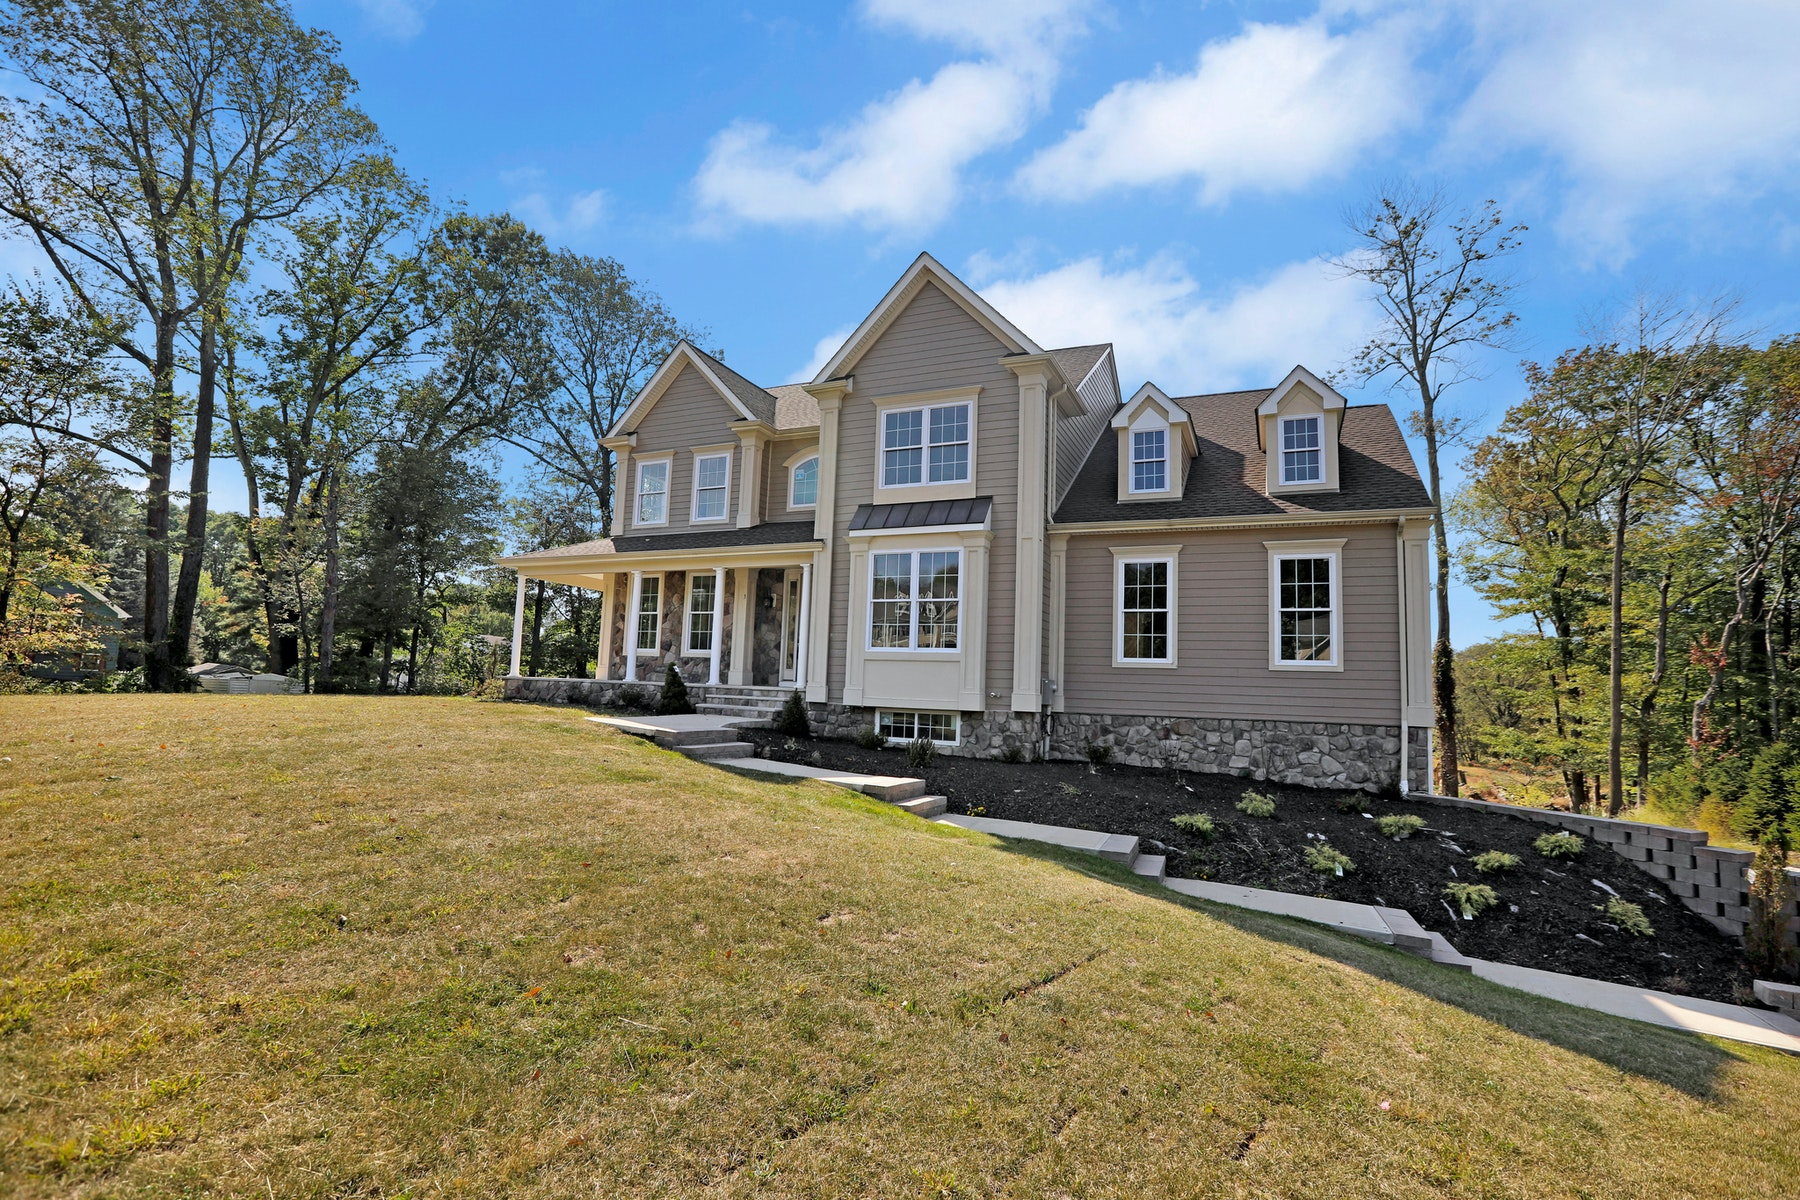 Single Family Homes for Sale at Live New Beginnings 6 San Road Warren, New Jersey 07059 United States